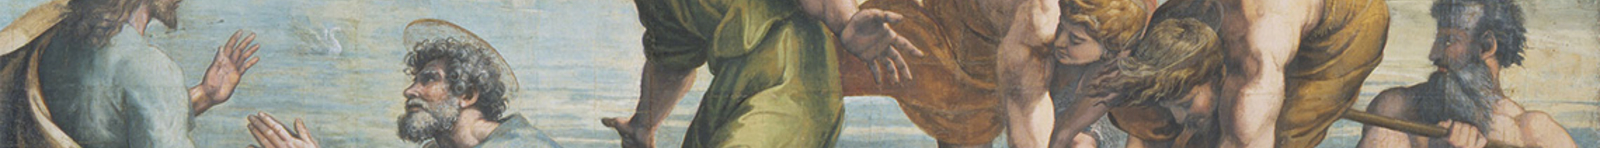 Detail from the miraculous Draft of Fishes, showing Christ and the disciples in a fishing boat